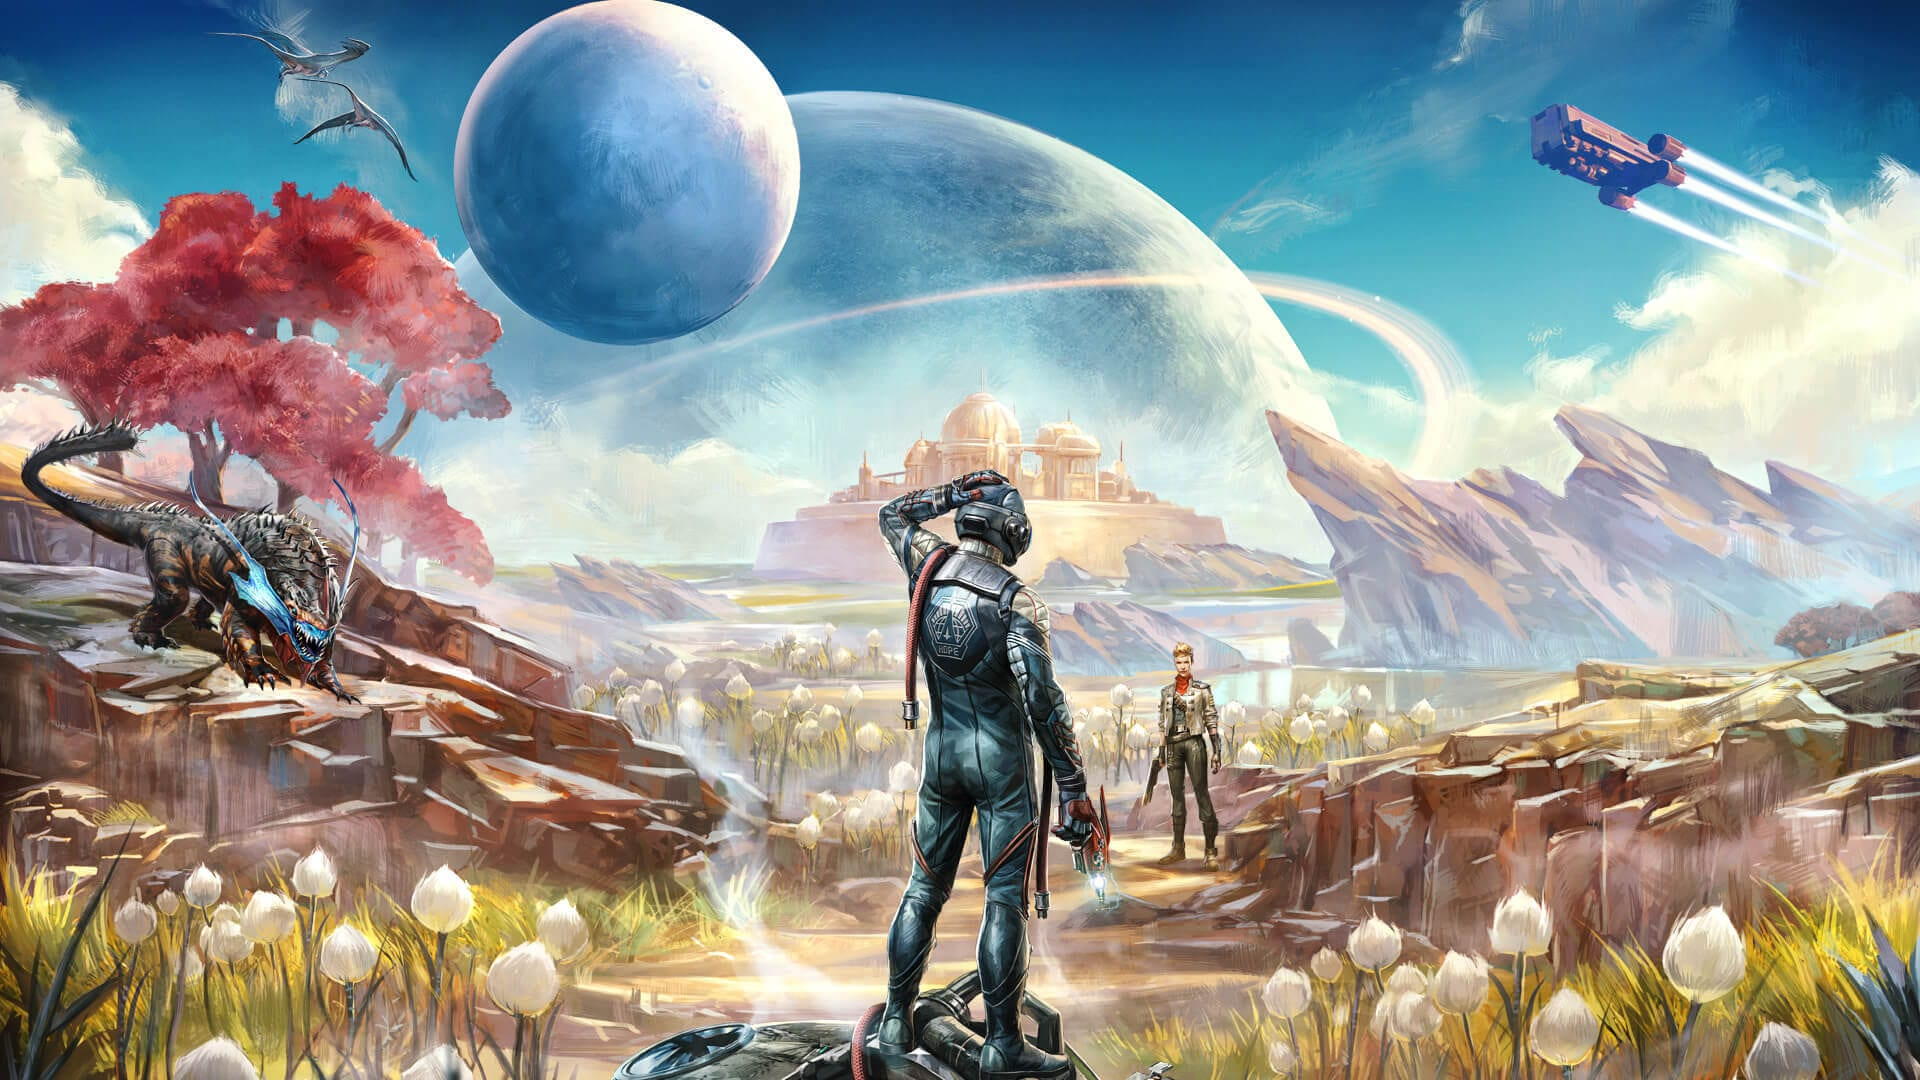 The Outer Worlds art